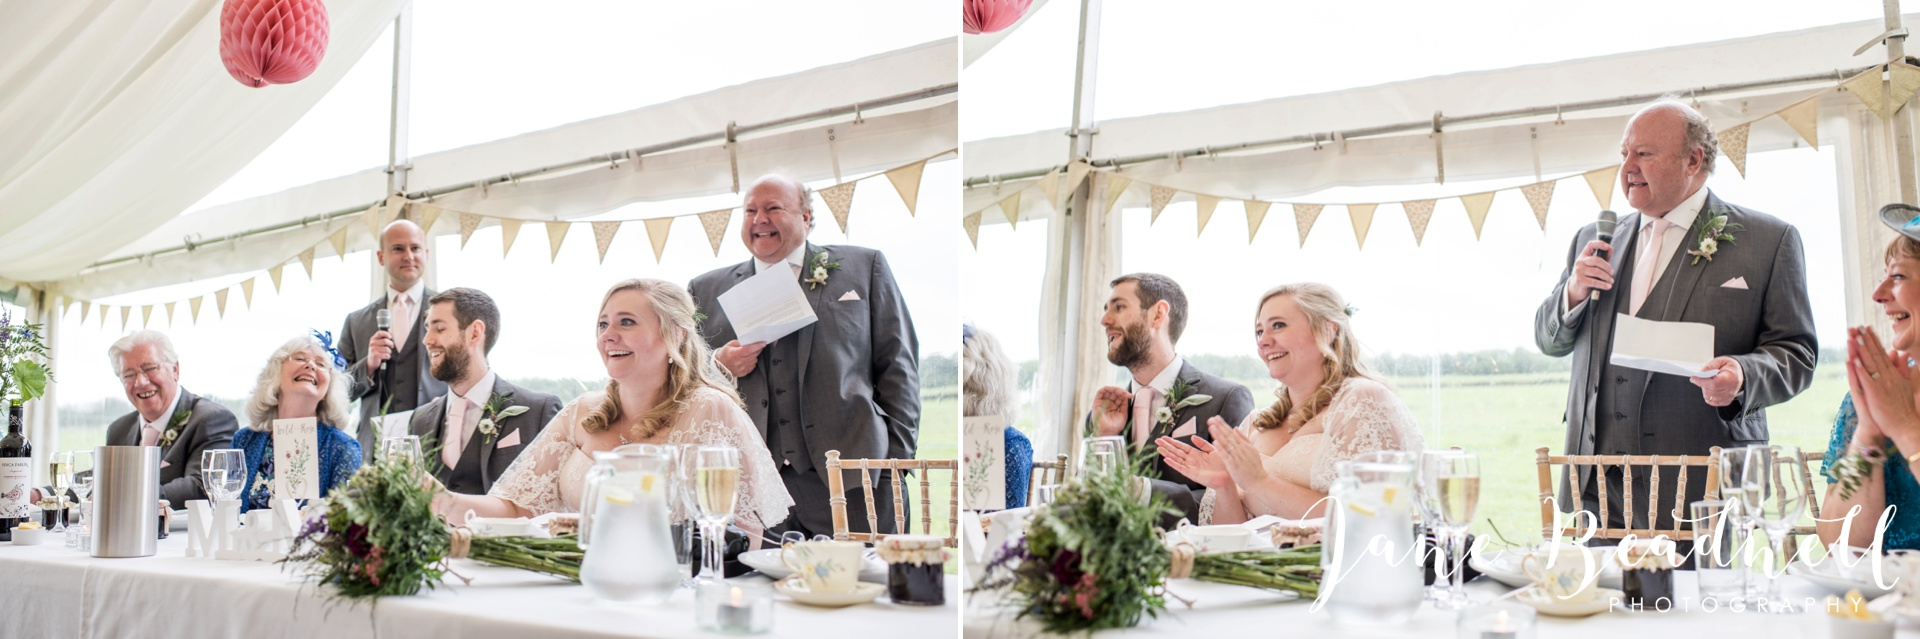 Yorkshire Wedding Photography the cheerful Chilli Barn Wedding by Jane Beadnell Photography_0168